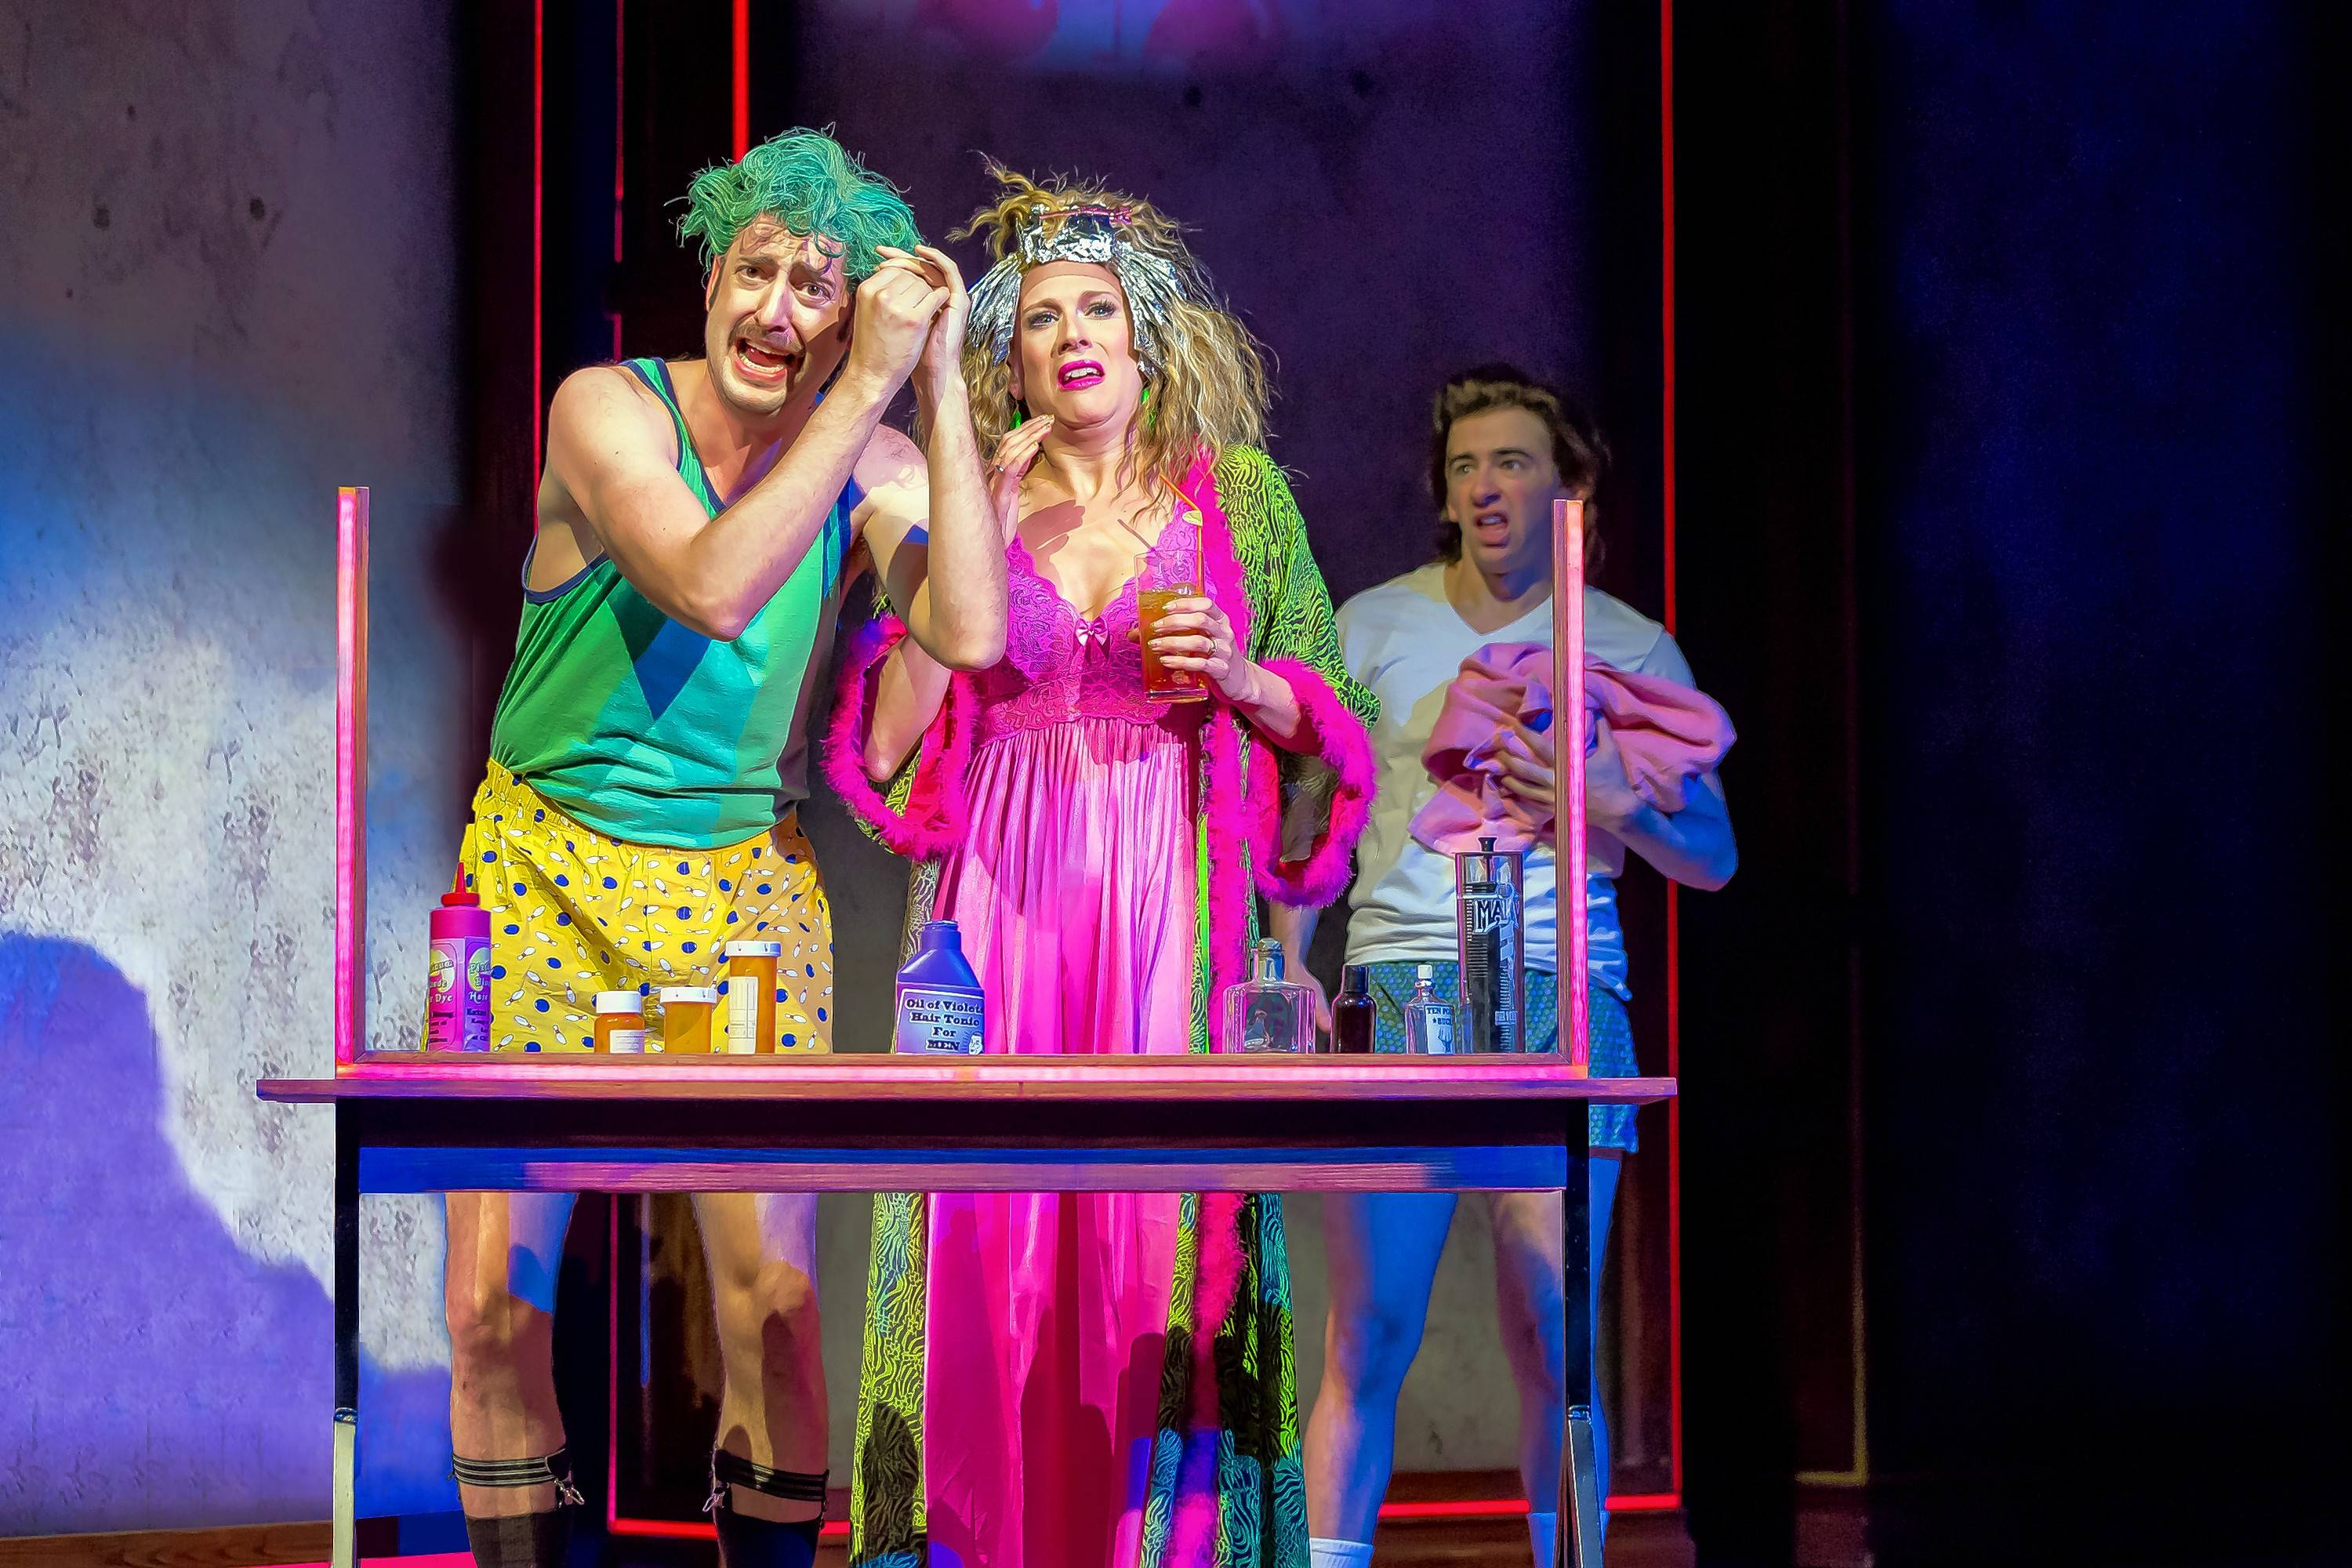 """Crass and corrupt, Matilda's parents (Jackson Evans, left and Stephanie Gibson) and brother (Evan C. Dolan) prefer looks and television over books and education in """"Matilda the Musical,"""" running through June 23 at Drury Lane Theatre."""